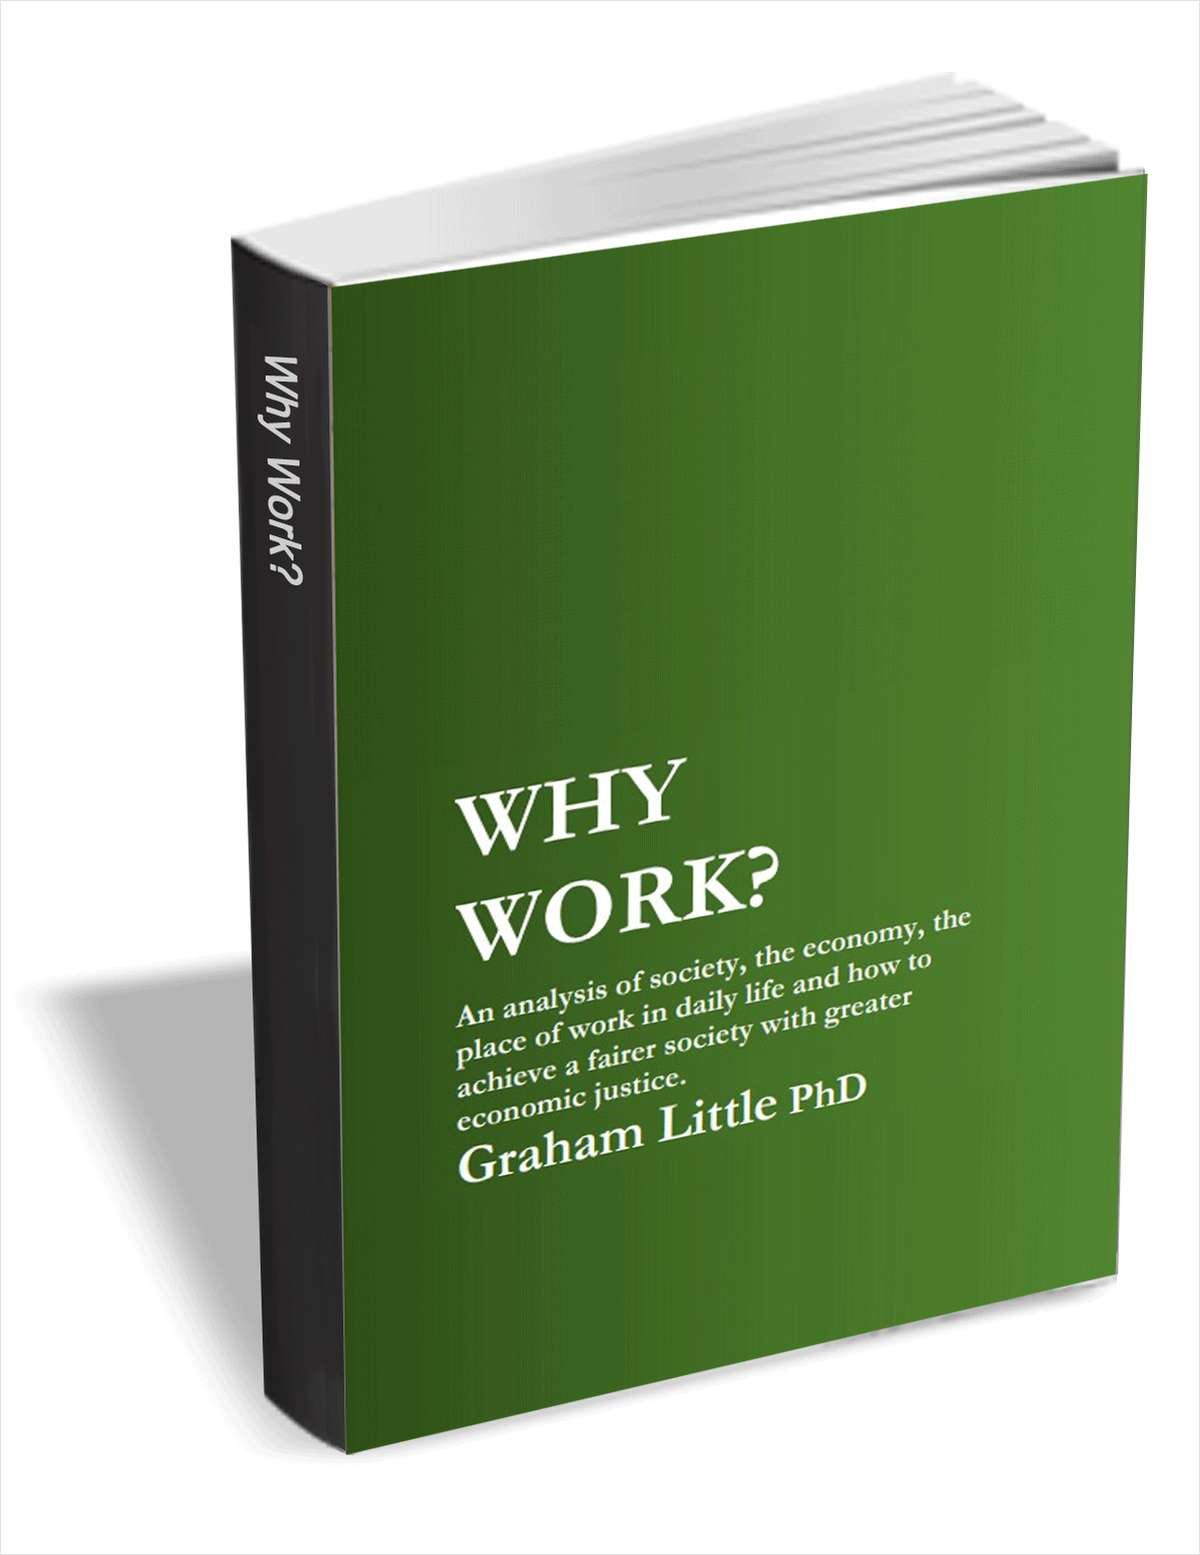 Why Work - An analysis of society, the economy, the place of work in daily life and how to achieve a fairer society with greater economic justice